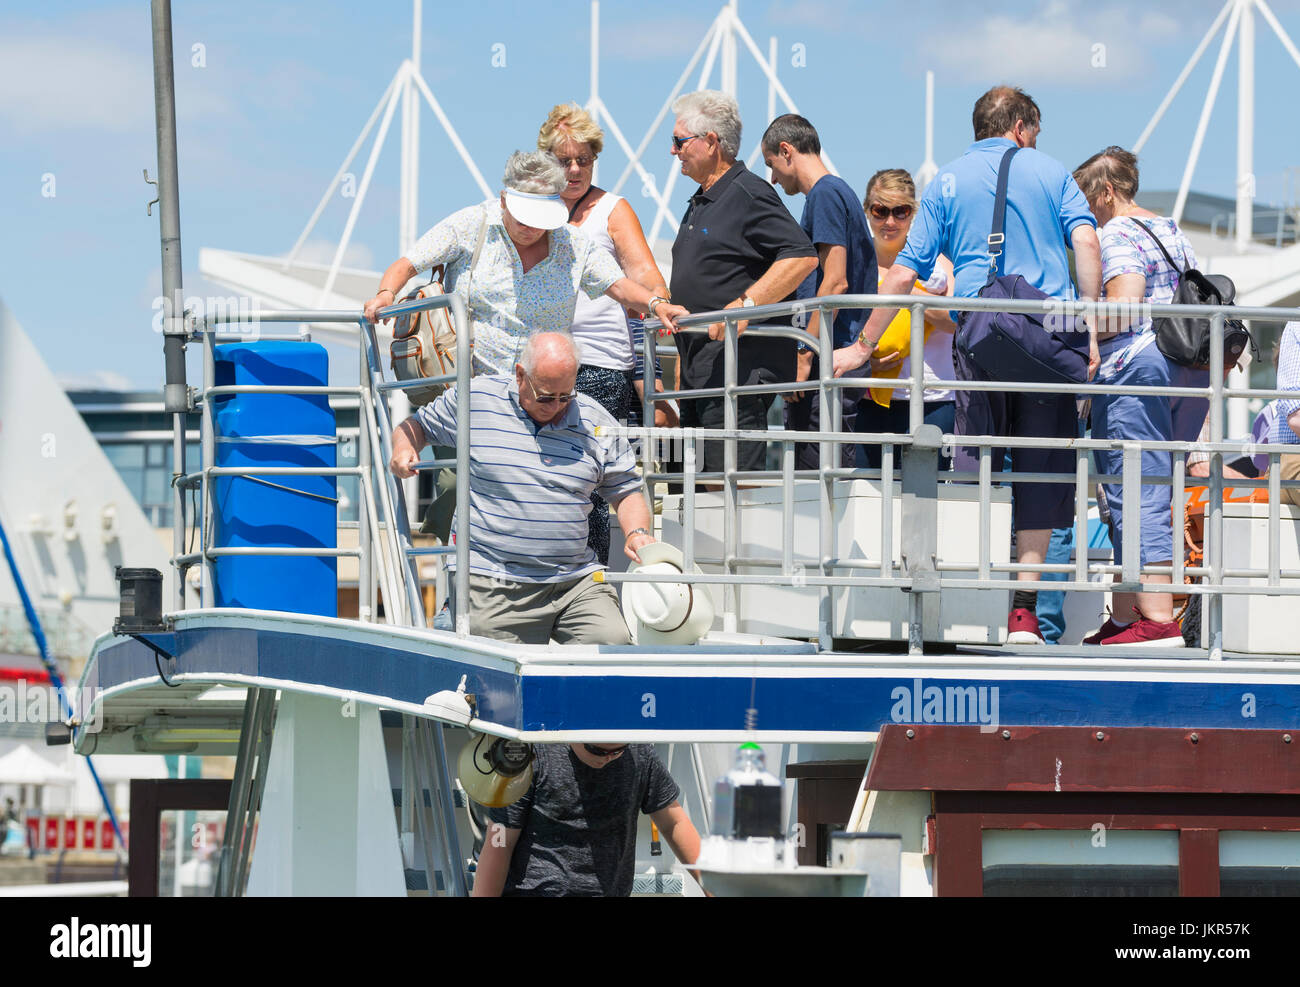 Ferry passengers disembarking from a boat. - Stock Image